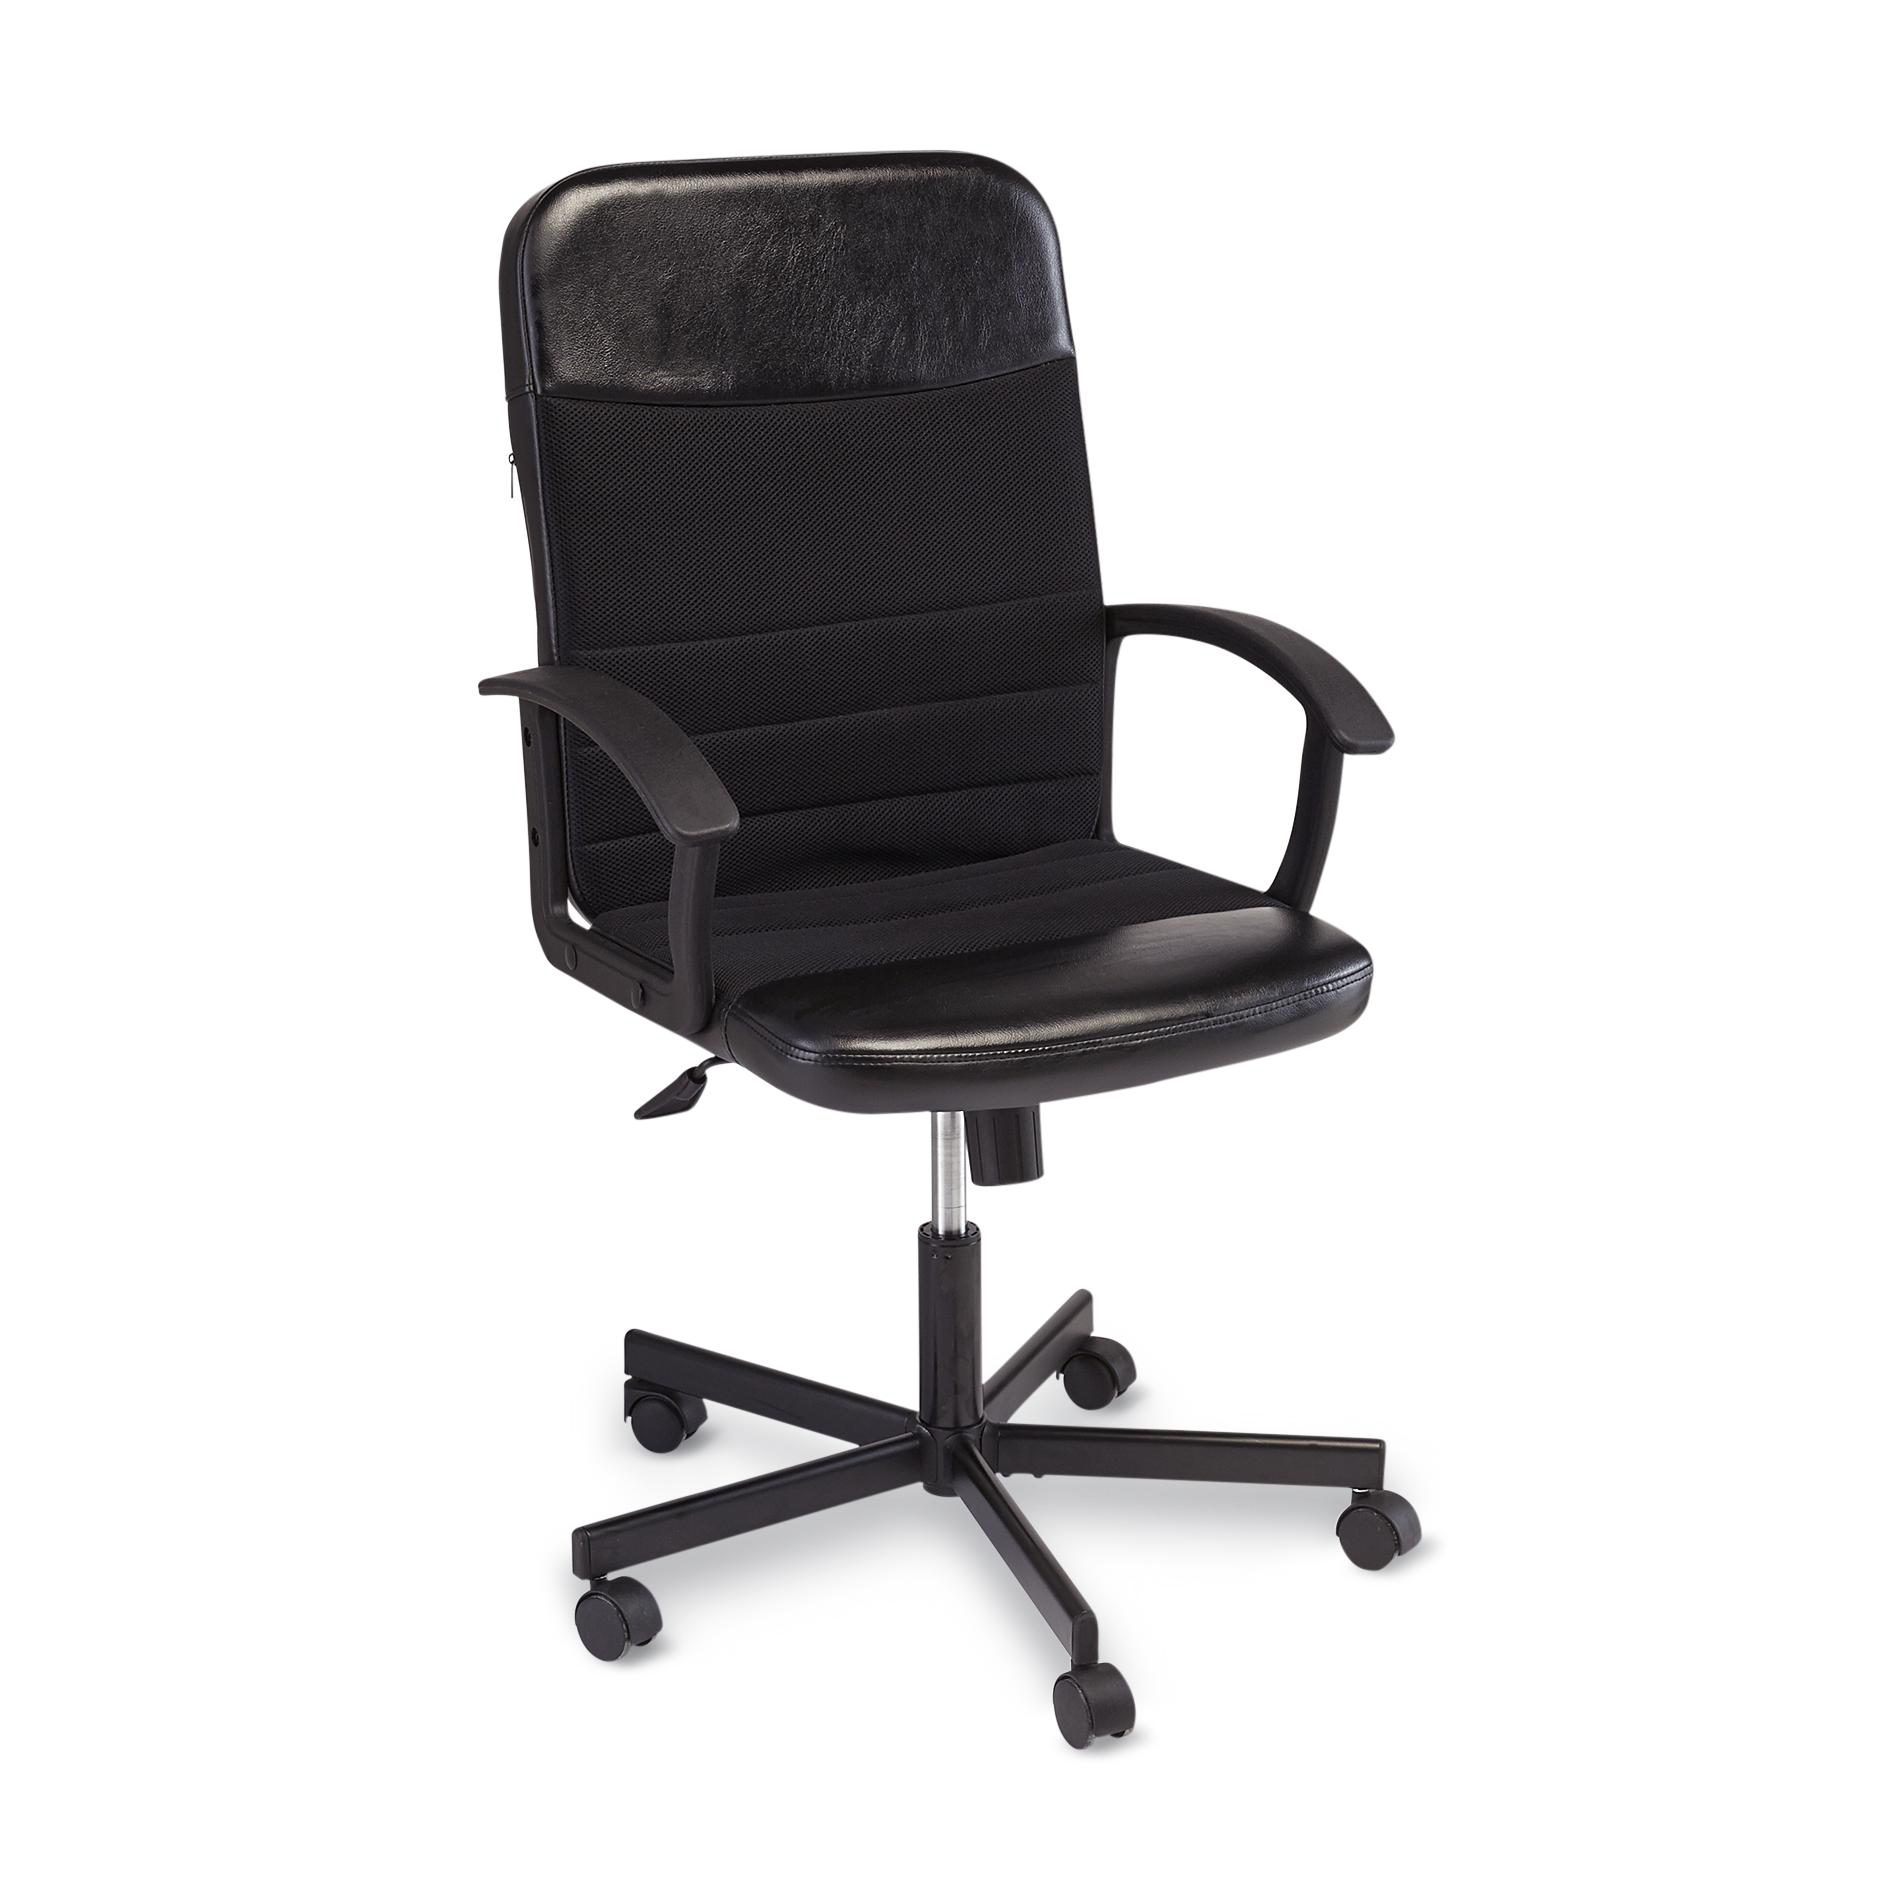 harith high back leather executive chair white covers and sashes office chairs desk kmart essential home deluxe